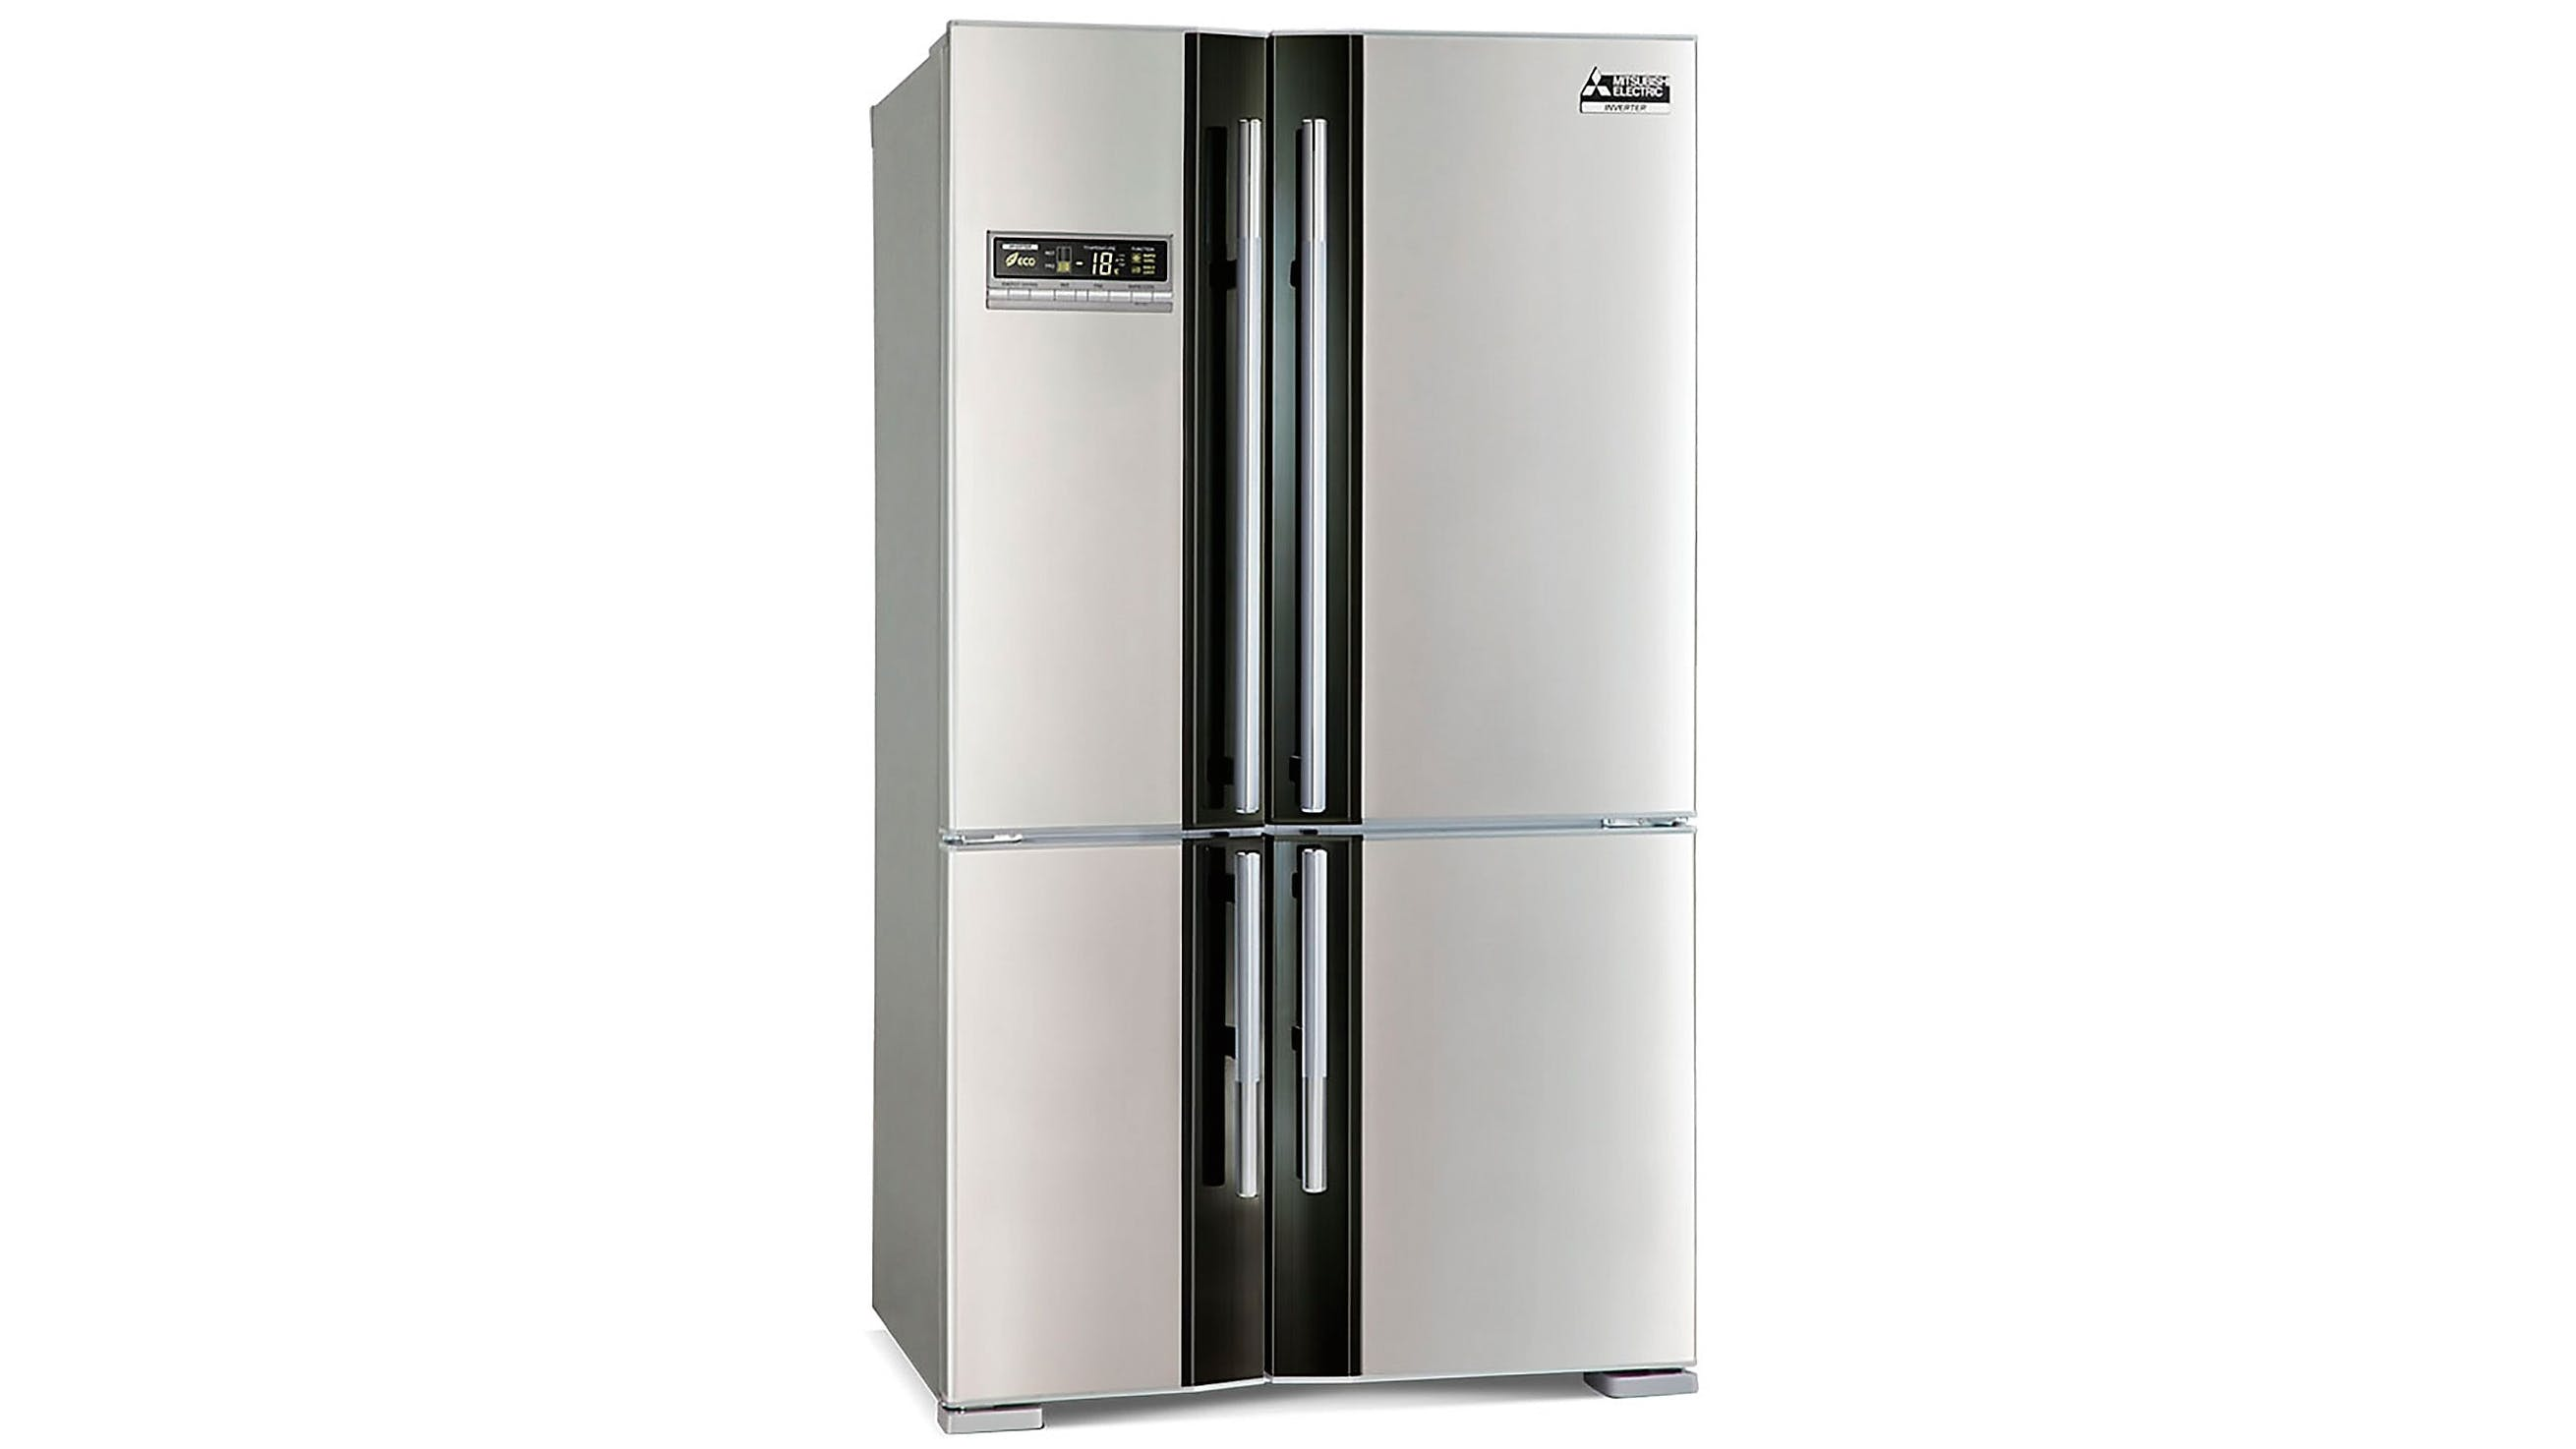 Mitsubishi Electric 650L L4 Mini Frech Door Fridge - Stainless Steel ...